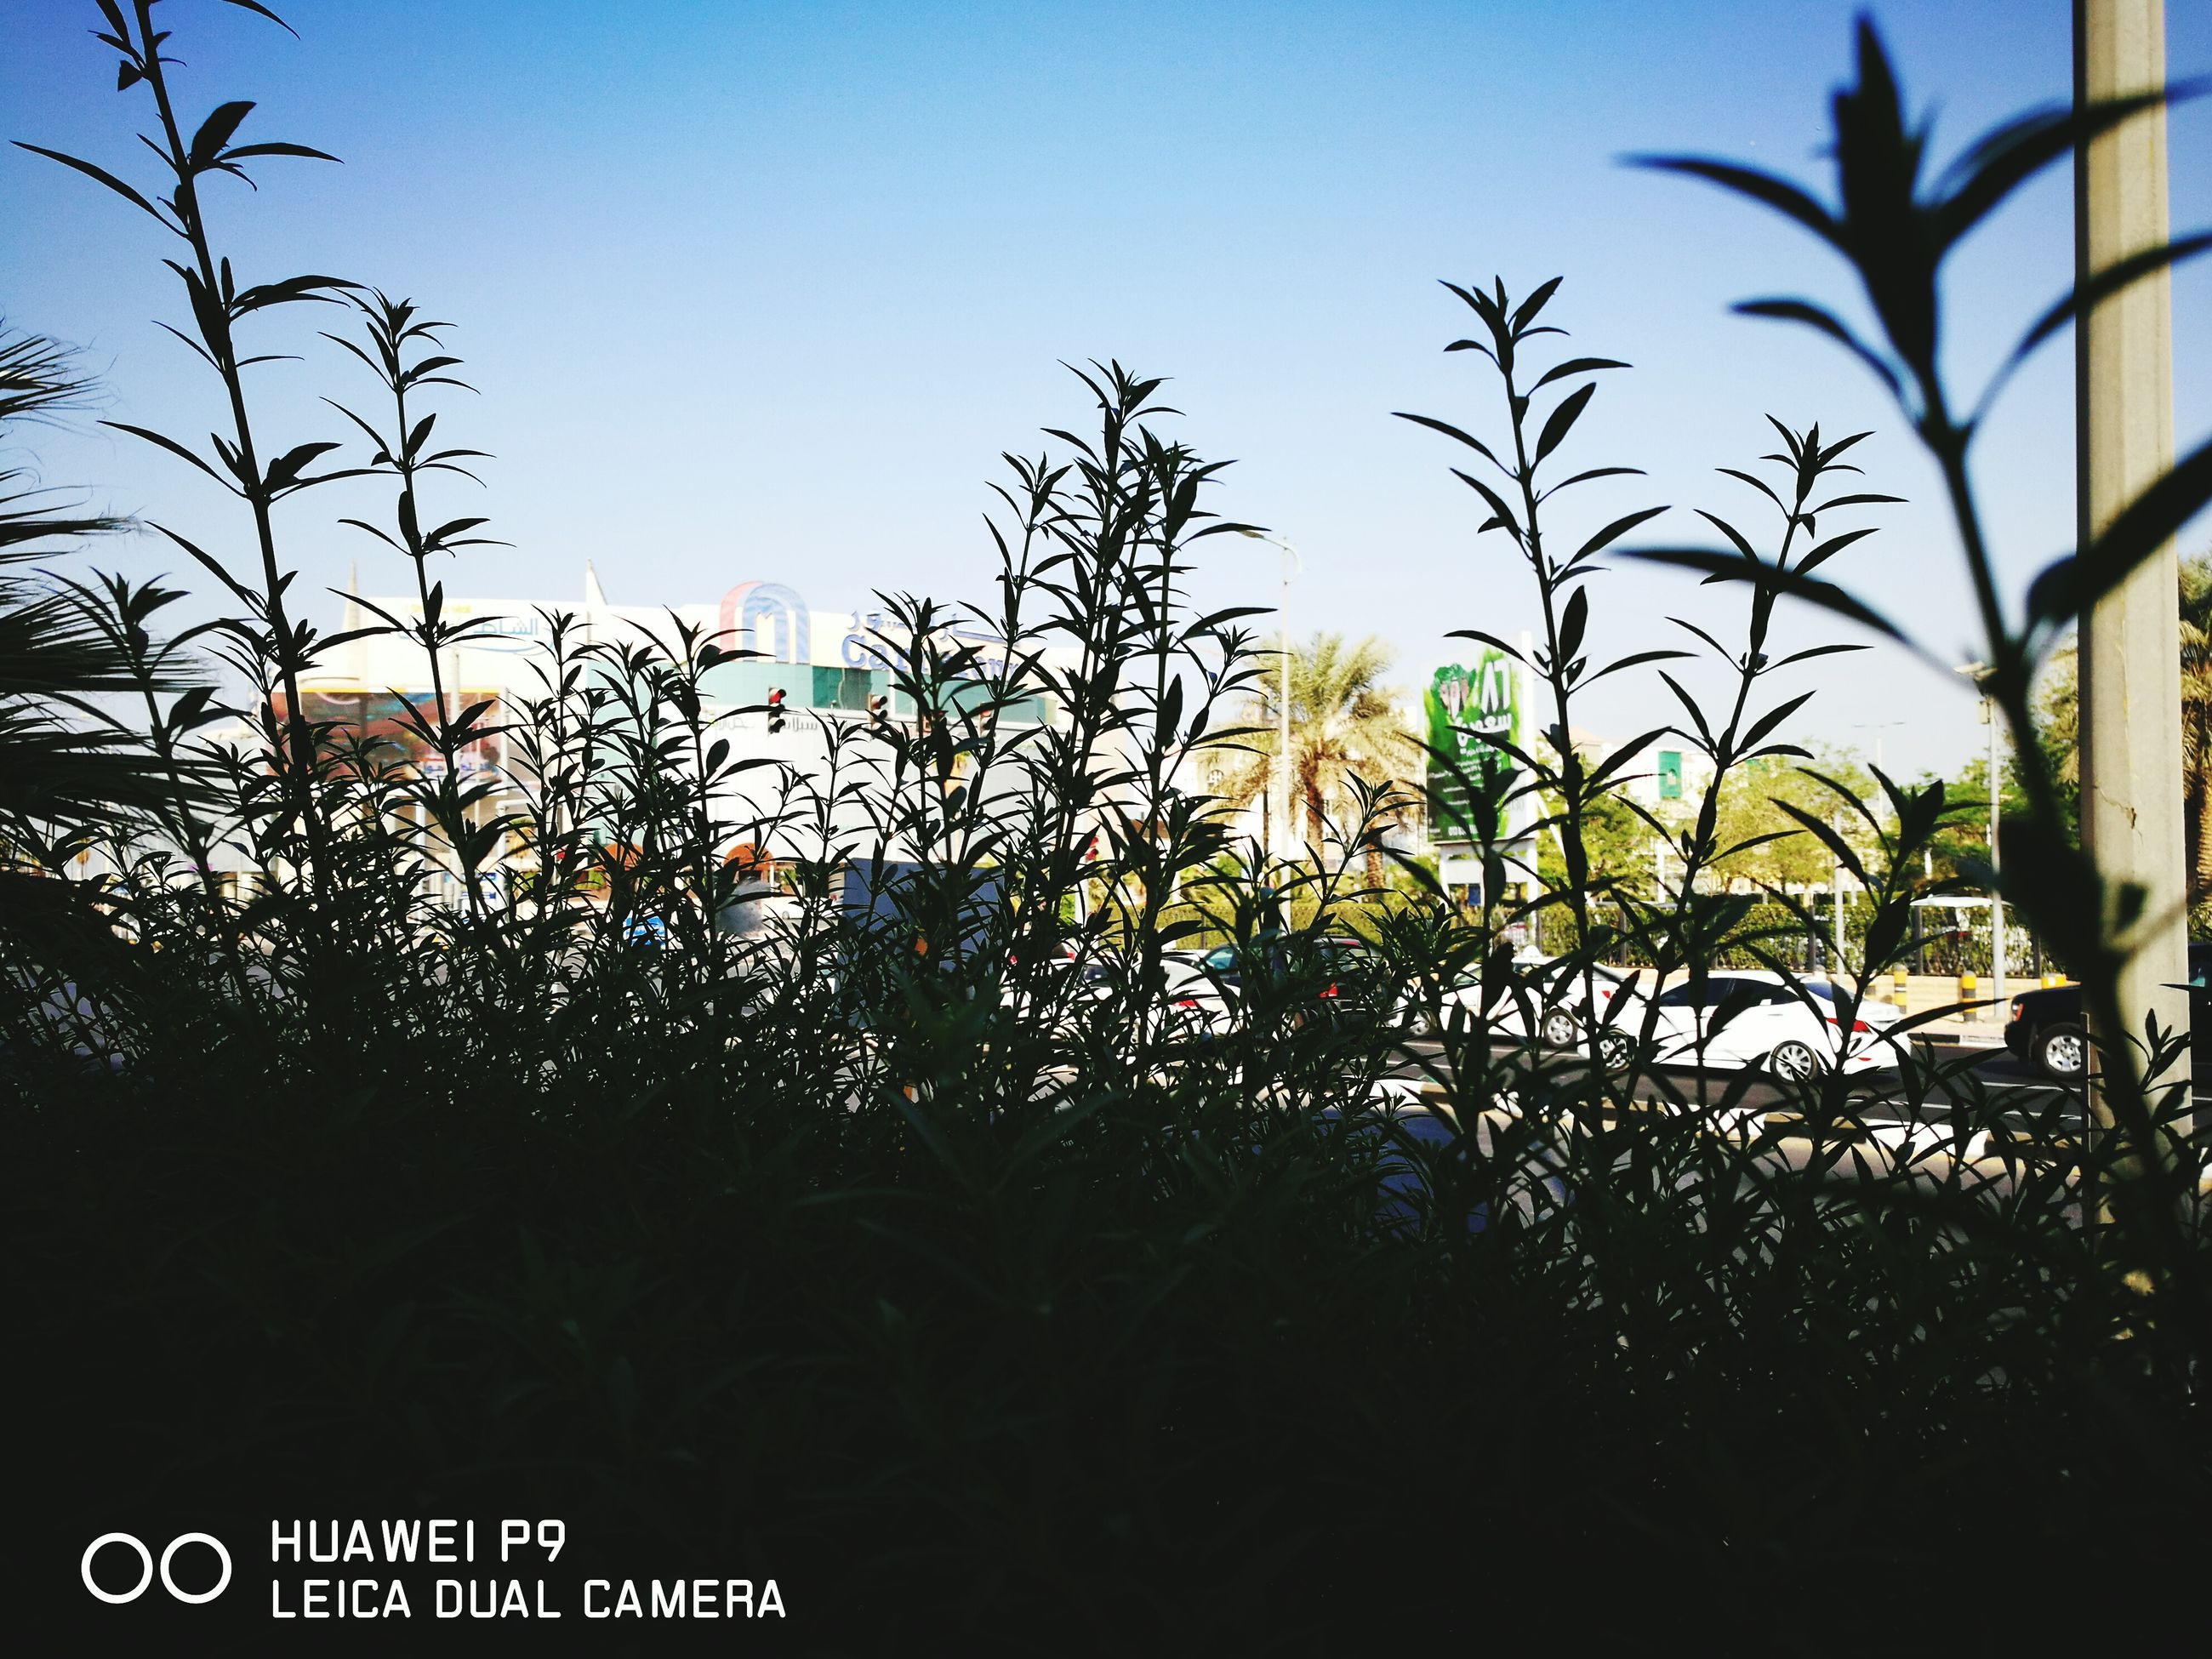 plant, growth, tranquil scene, scenics, tranquility, nature, outdoors, beauty in nature, sky, non-urban scene, blue, day, back lit, tall - high, no people, solitude